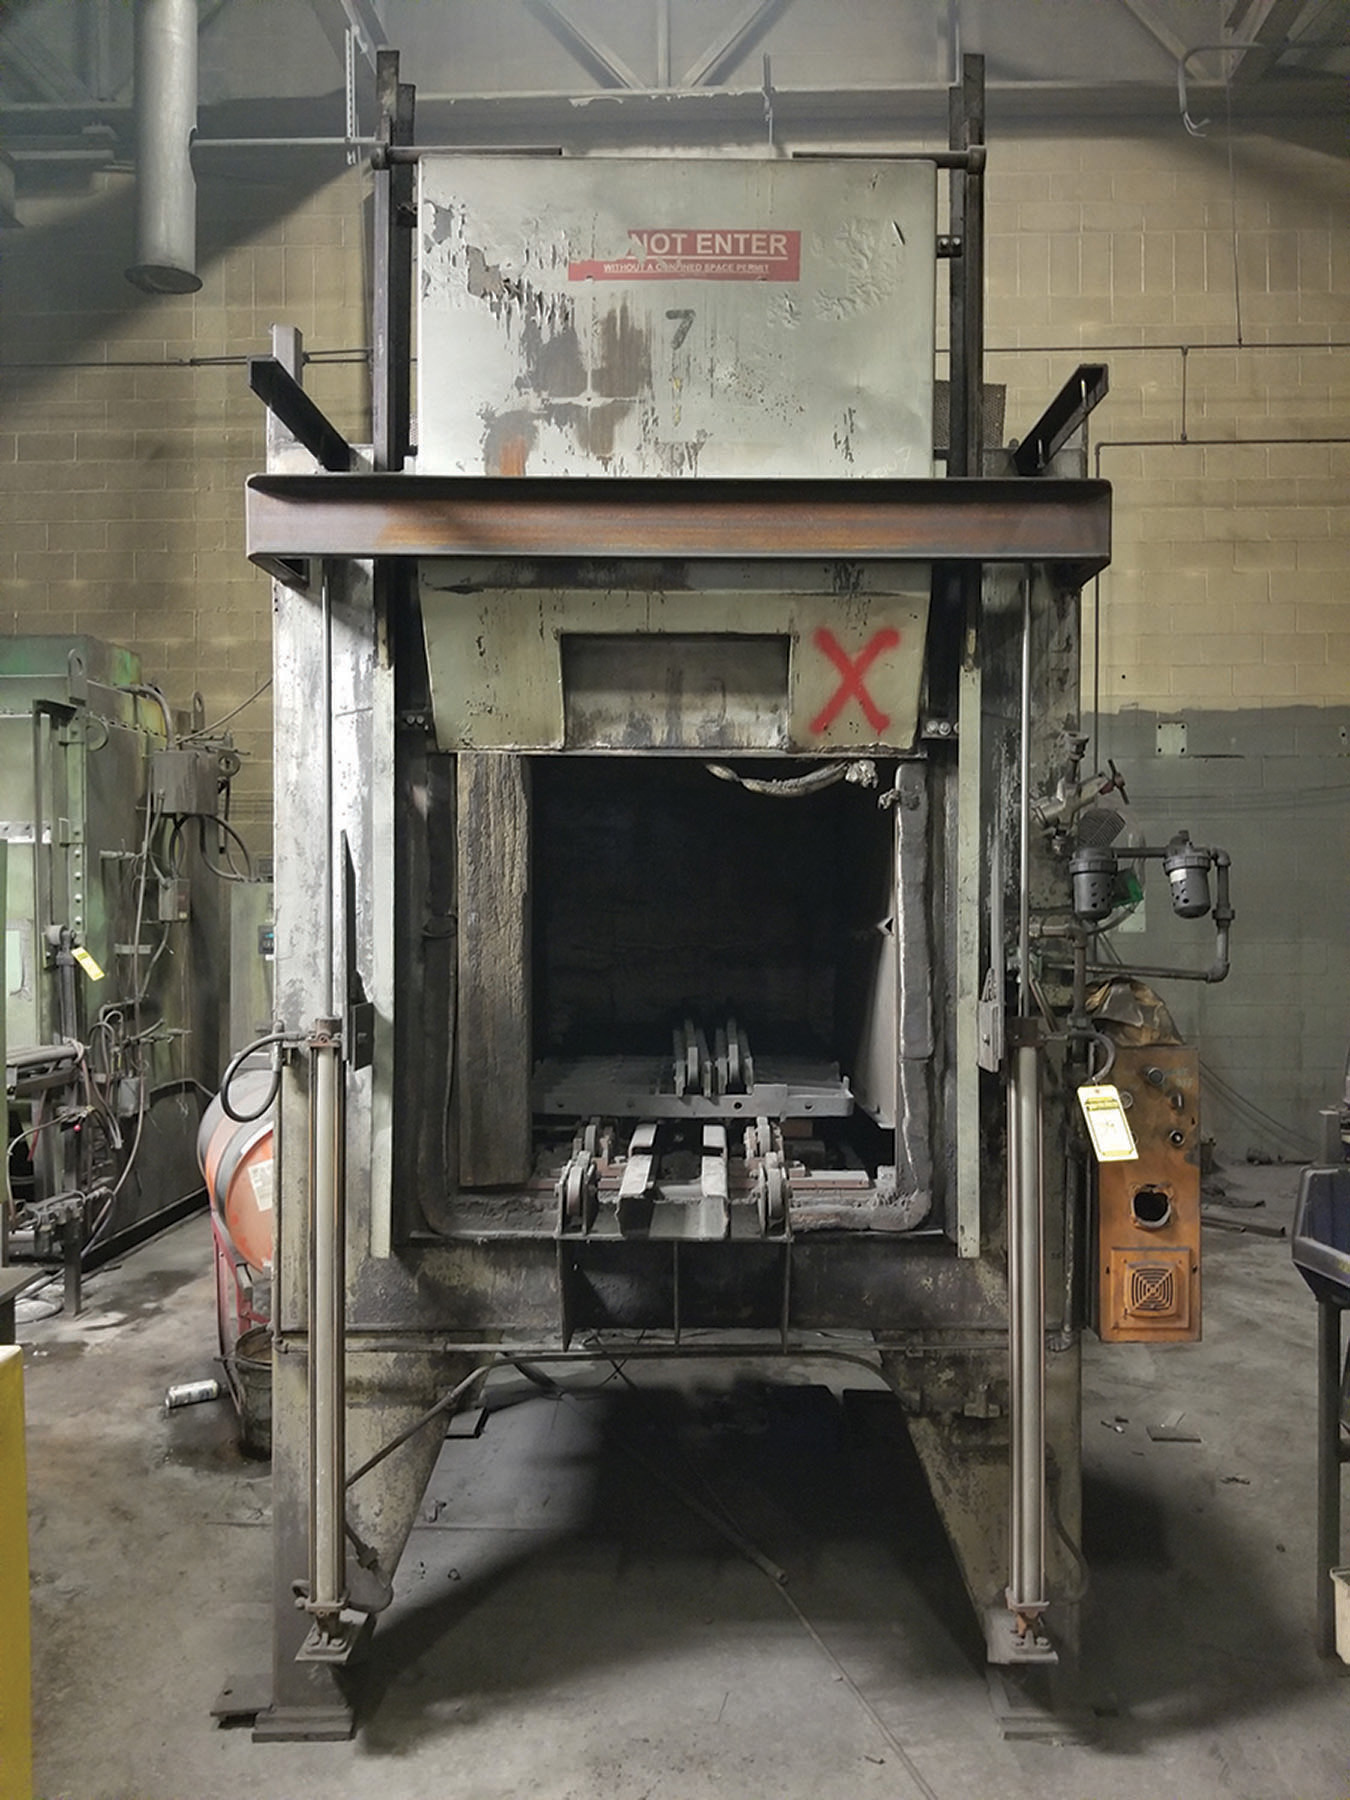 Lot 39 - SURFACE CONVECTION TEMPERING FURNACE, S/N BC-41023-1, TEMPS MAX 1,400F/MIN 350F,460V/3PH/60H,